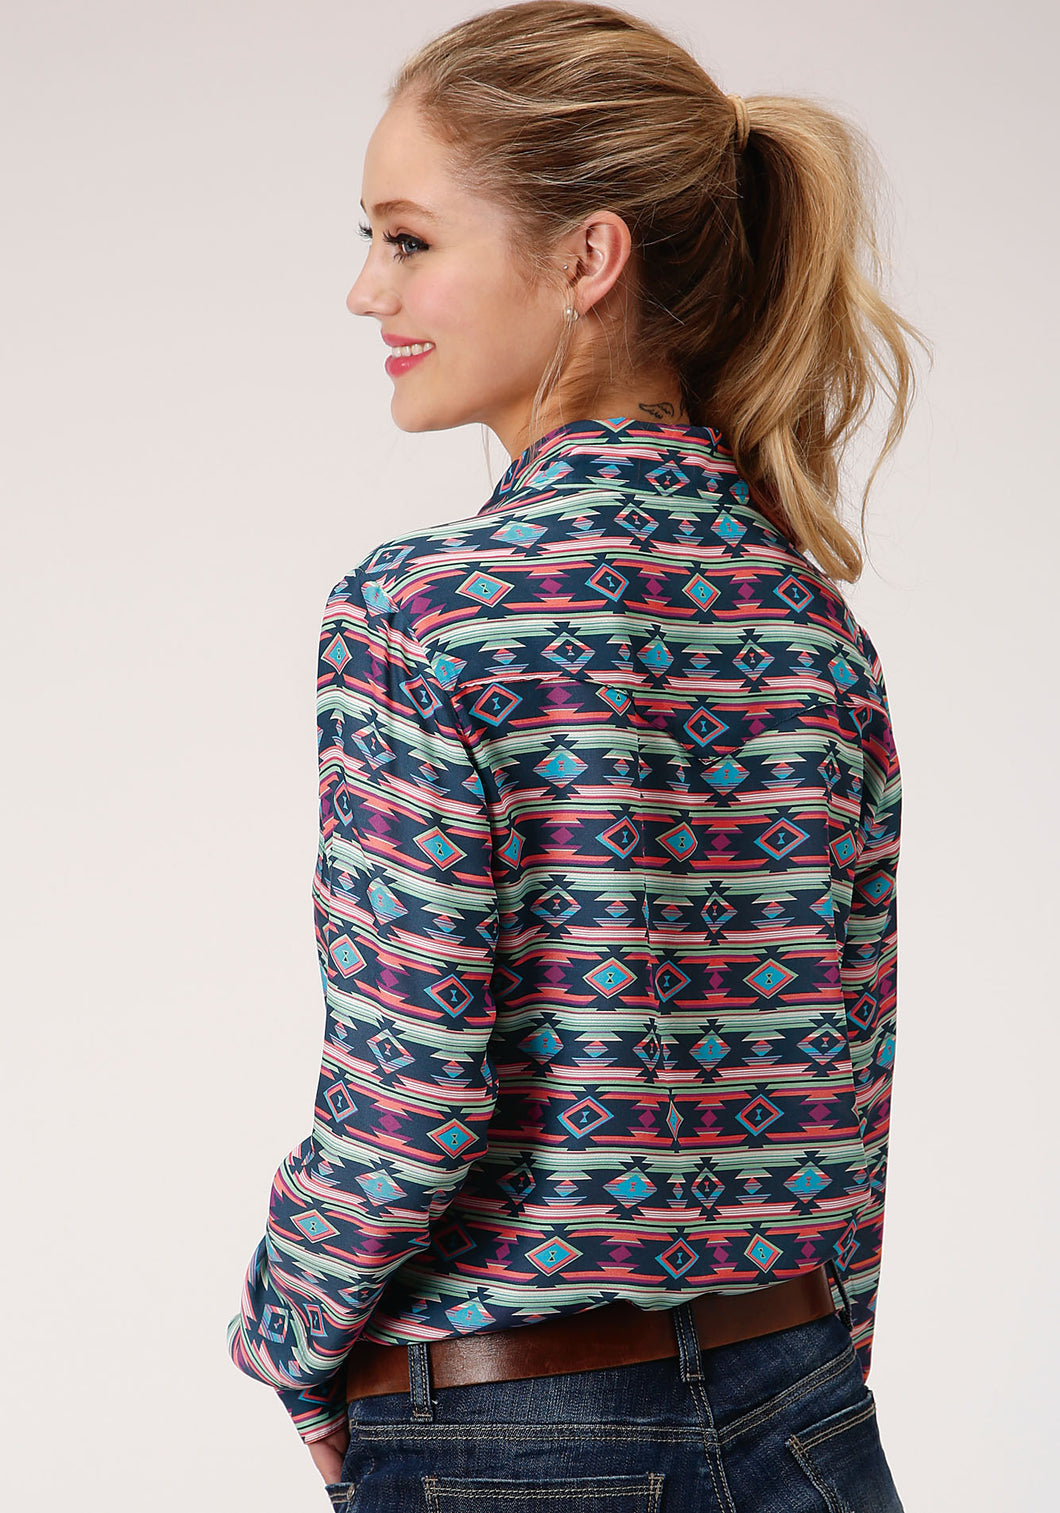 Five Star Collection- Spring Ii 5star Womens Long Sleeve 00118 Navy Aztec Prt Rayon Ls Blouse